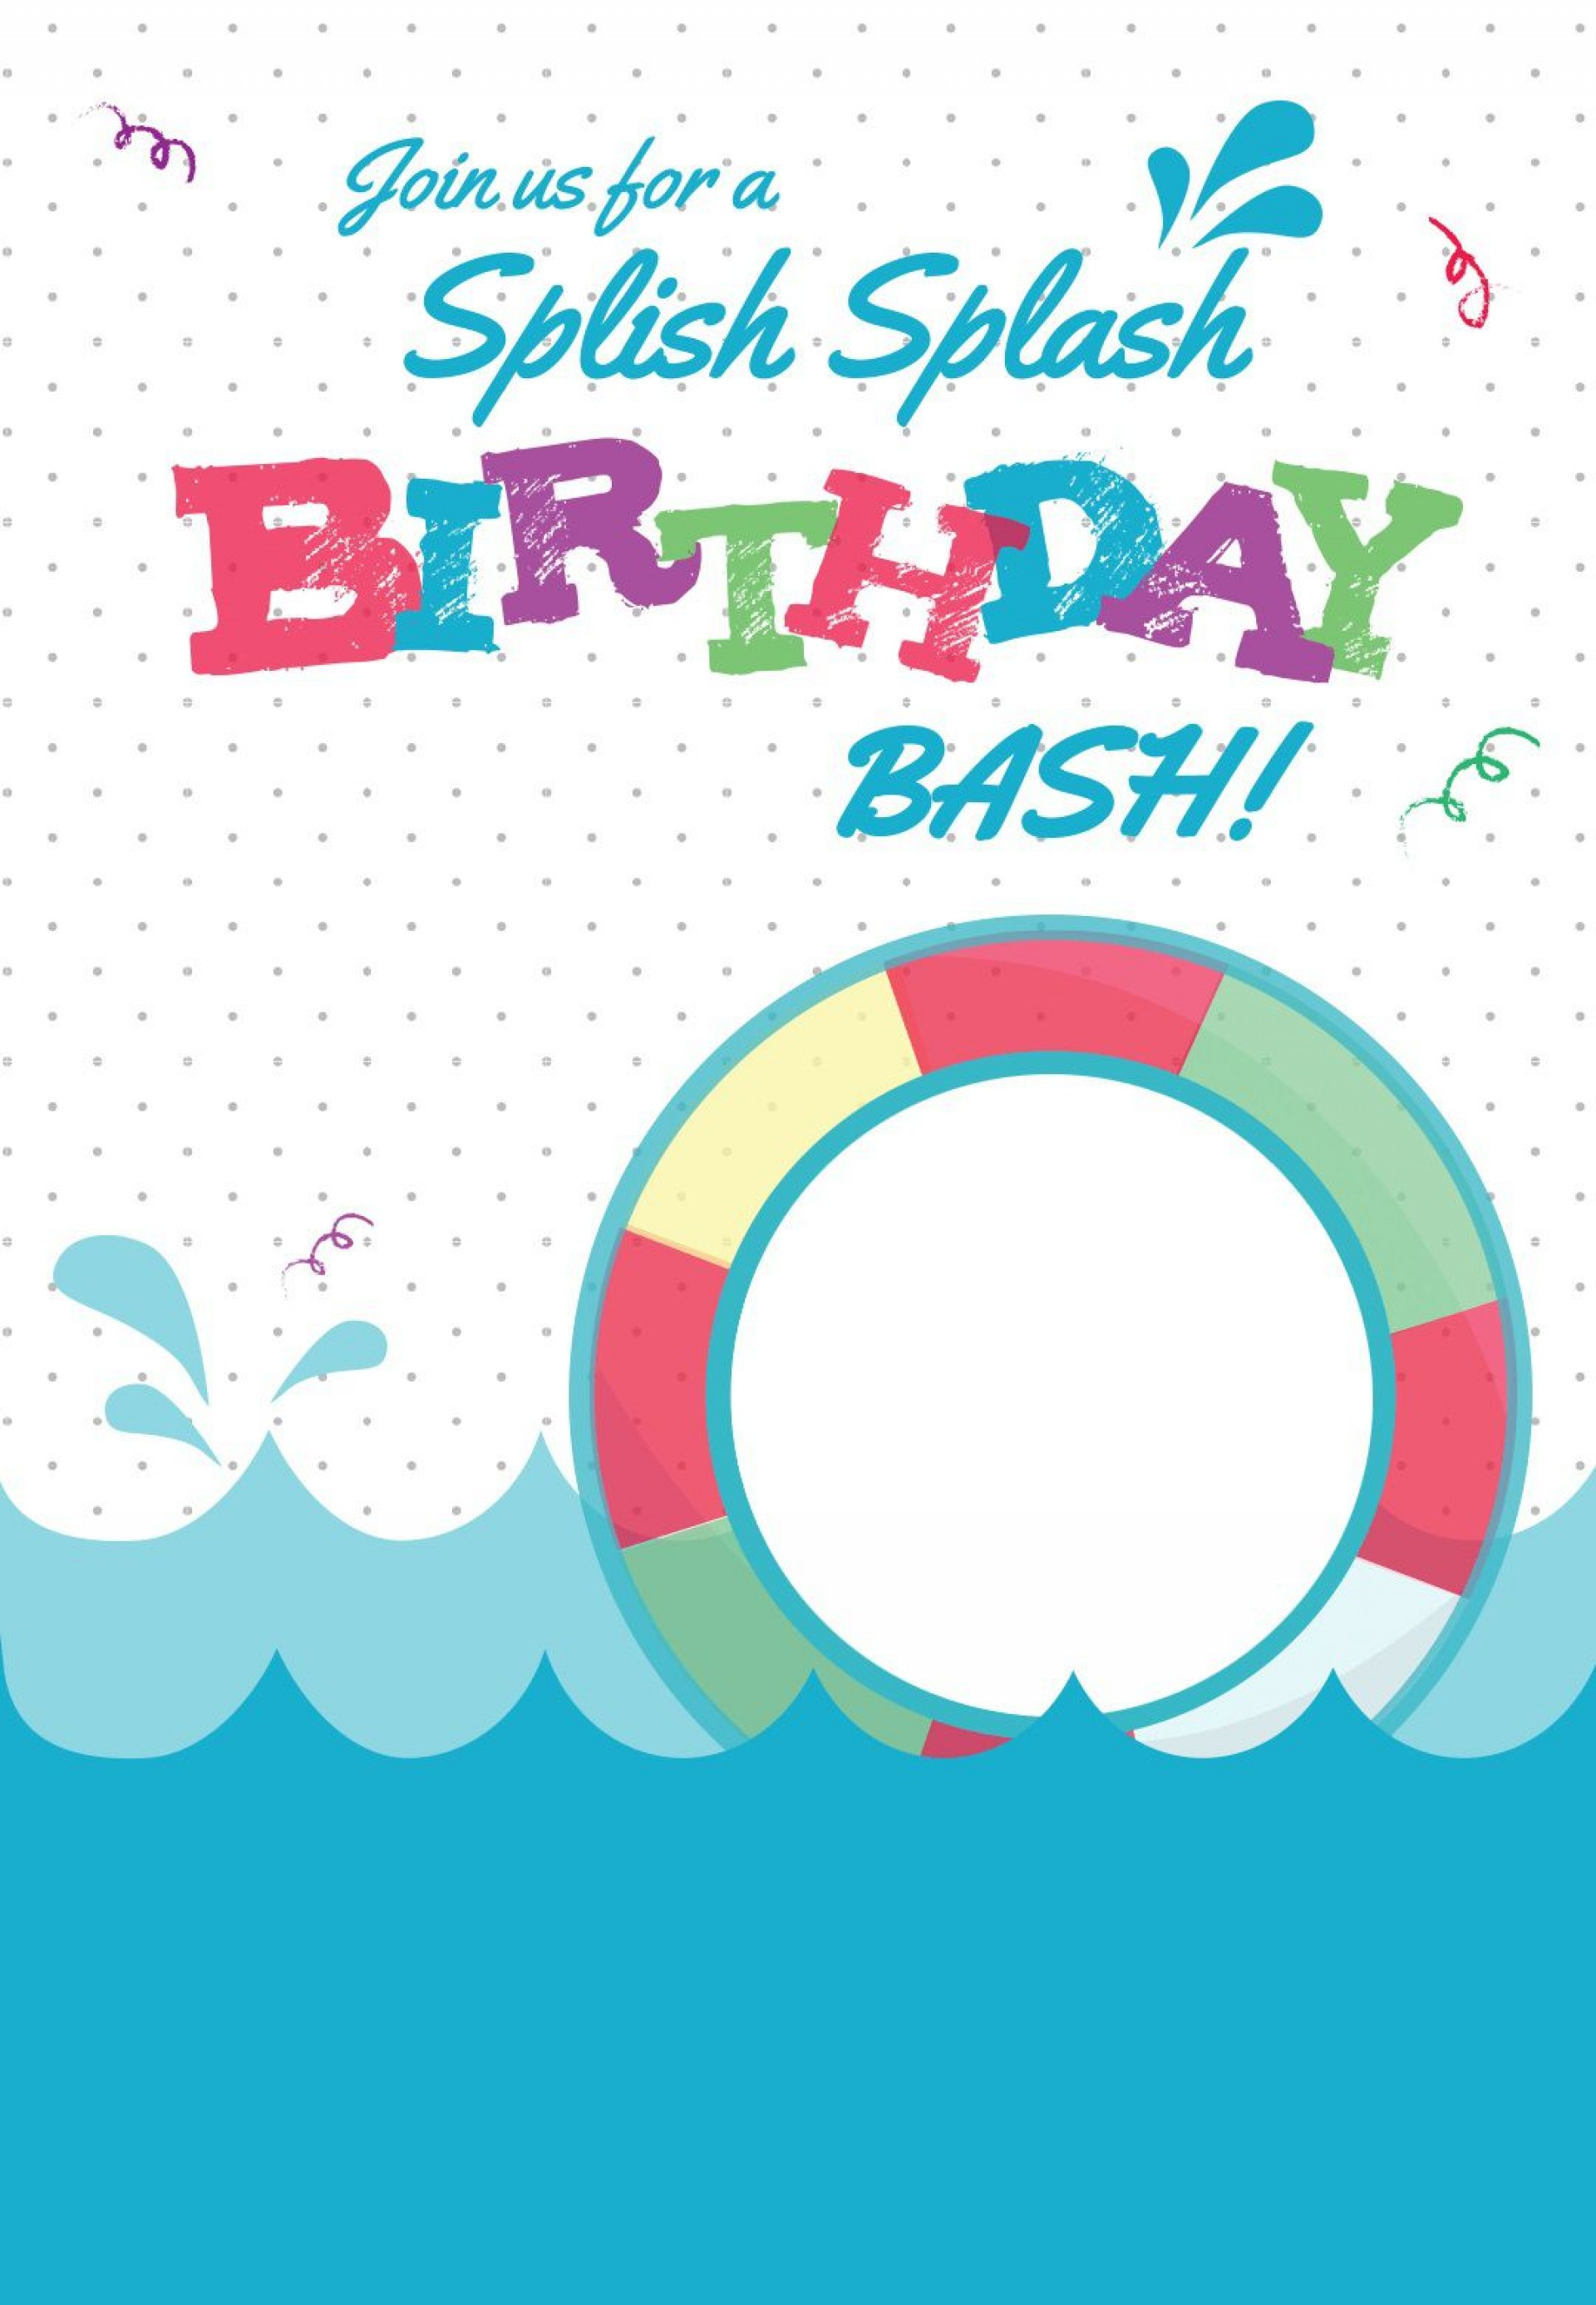 005 Fantastic Pool Party Invitation Template Free High Definition  Downloadable Printable Swimming1920